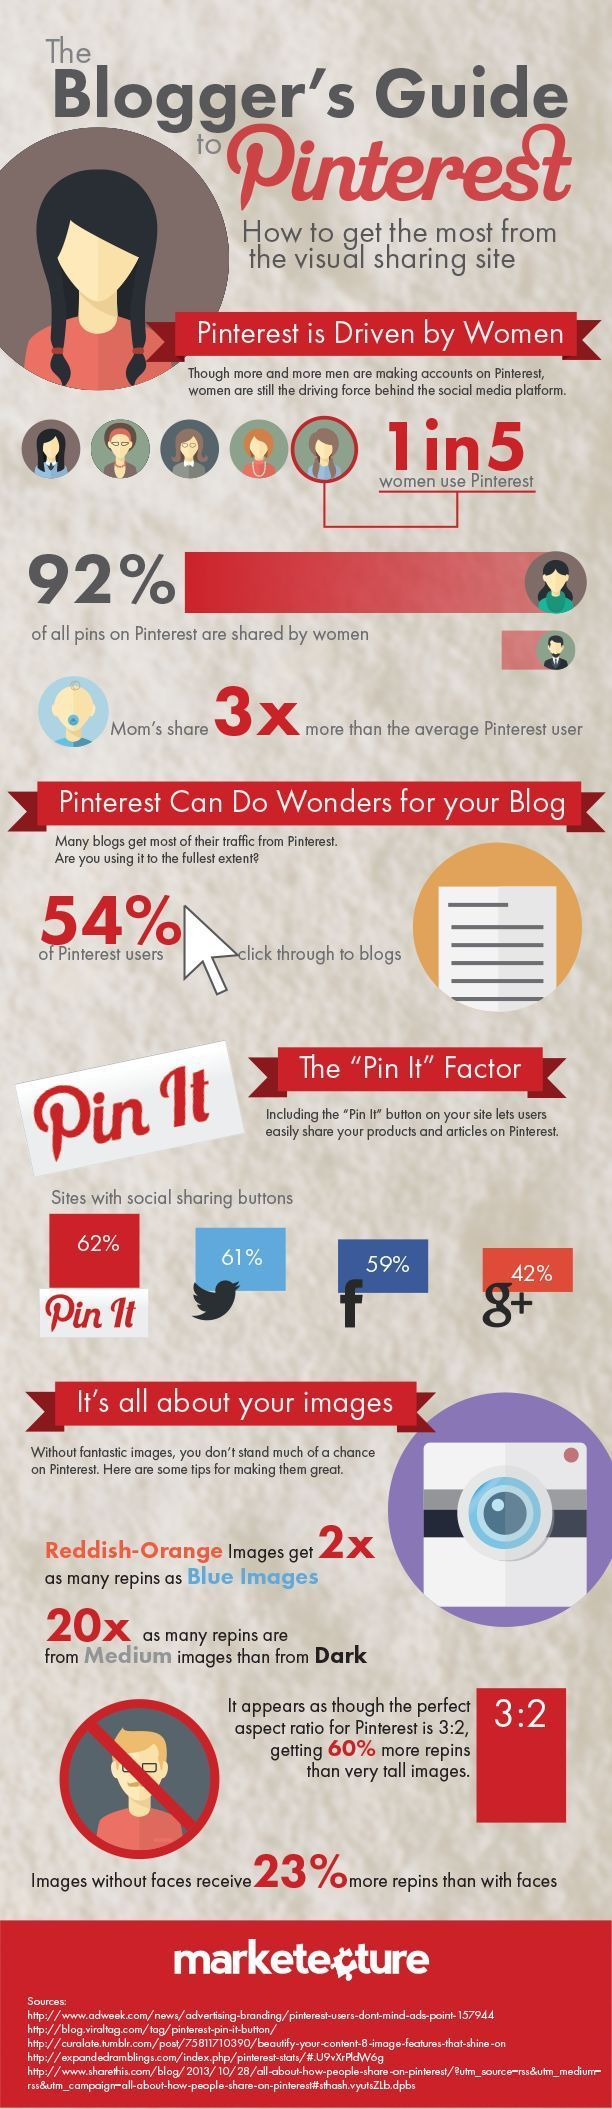 The Blogger's Guide to Pinterest: For bloggers and business owners, Pinterest is a great platform to get products and content onto the web. It's a great social media resource that marketers need to be taking advantage of.